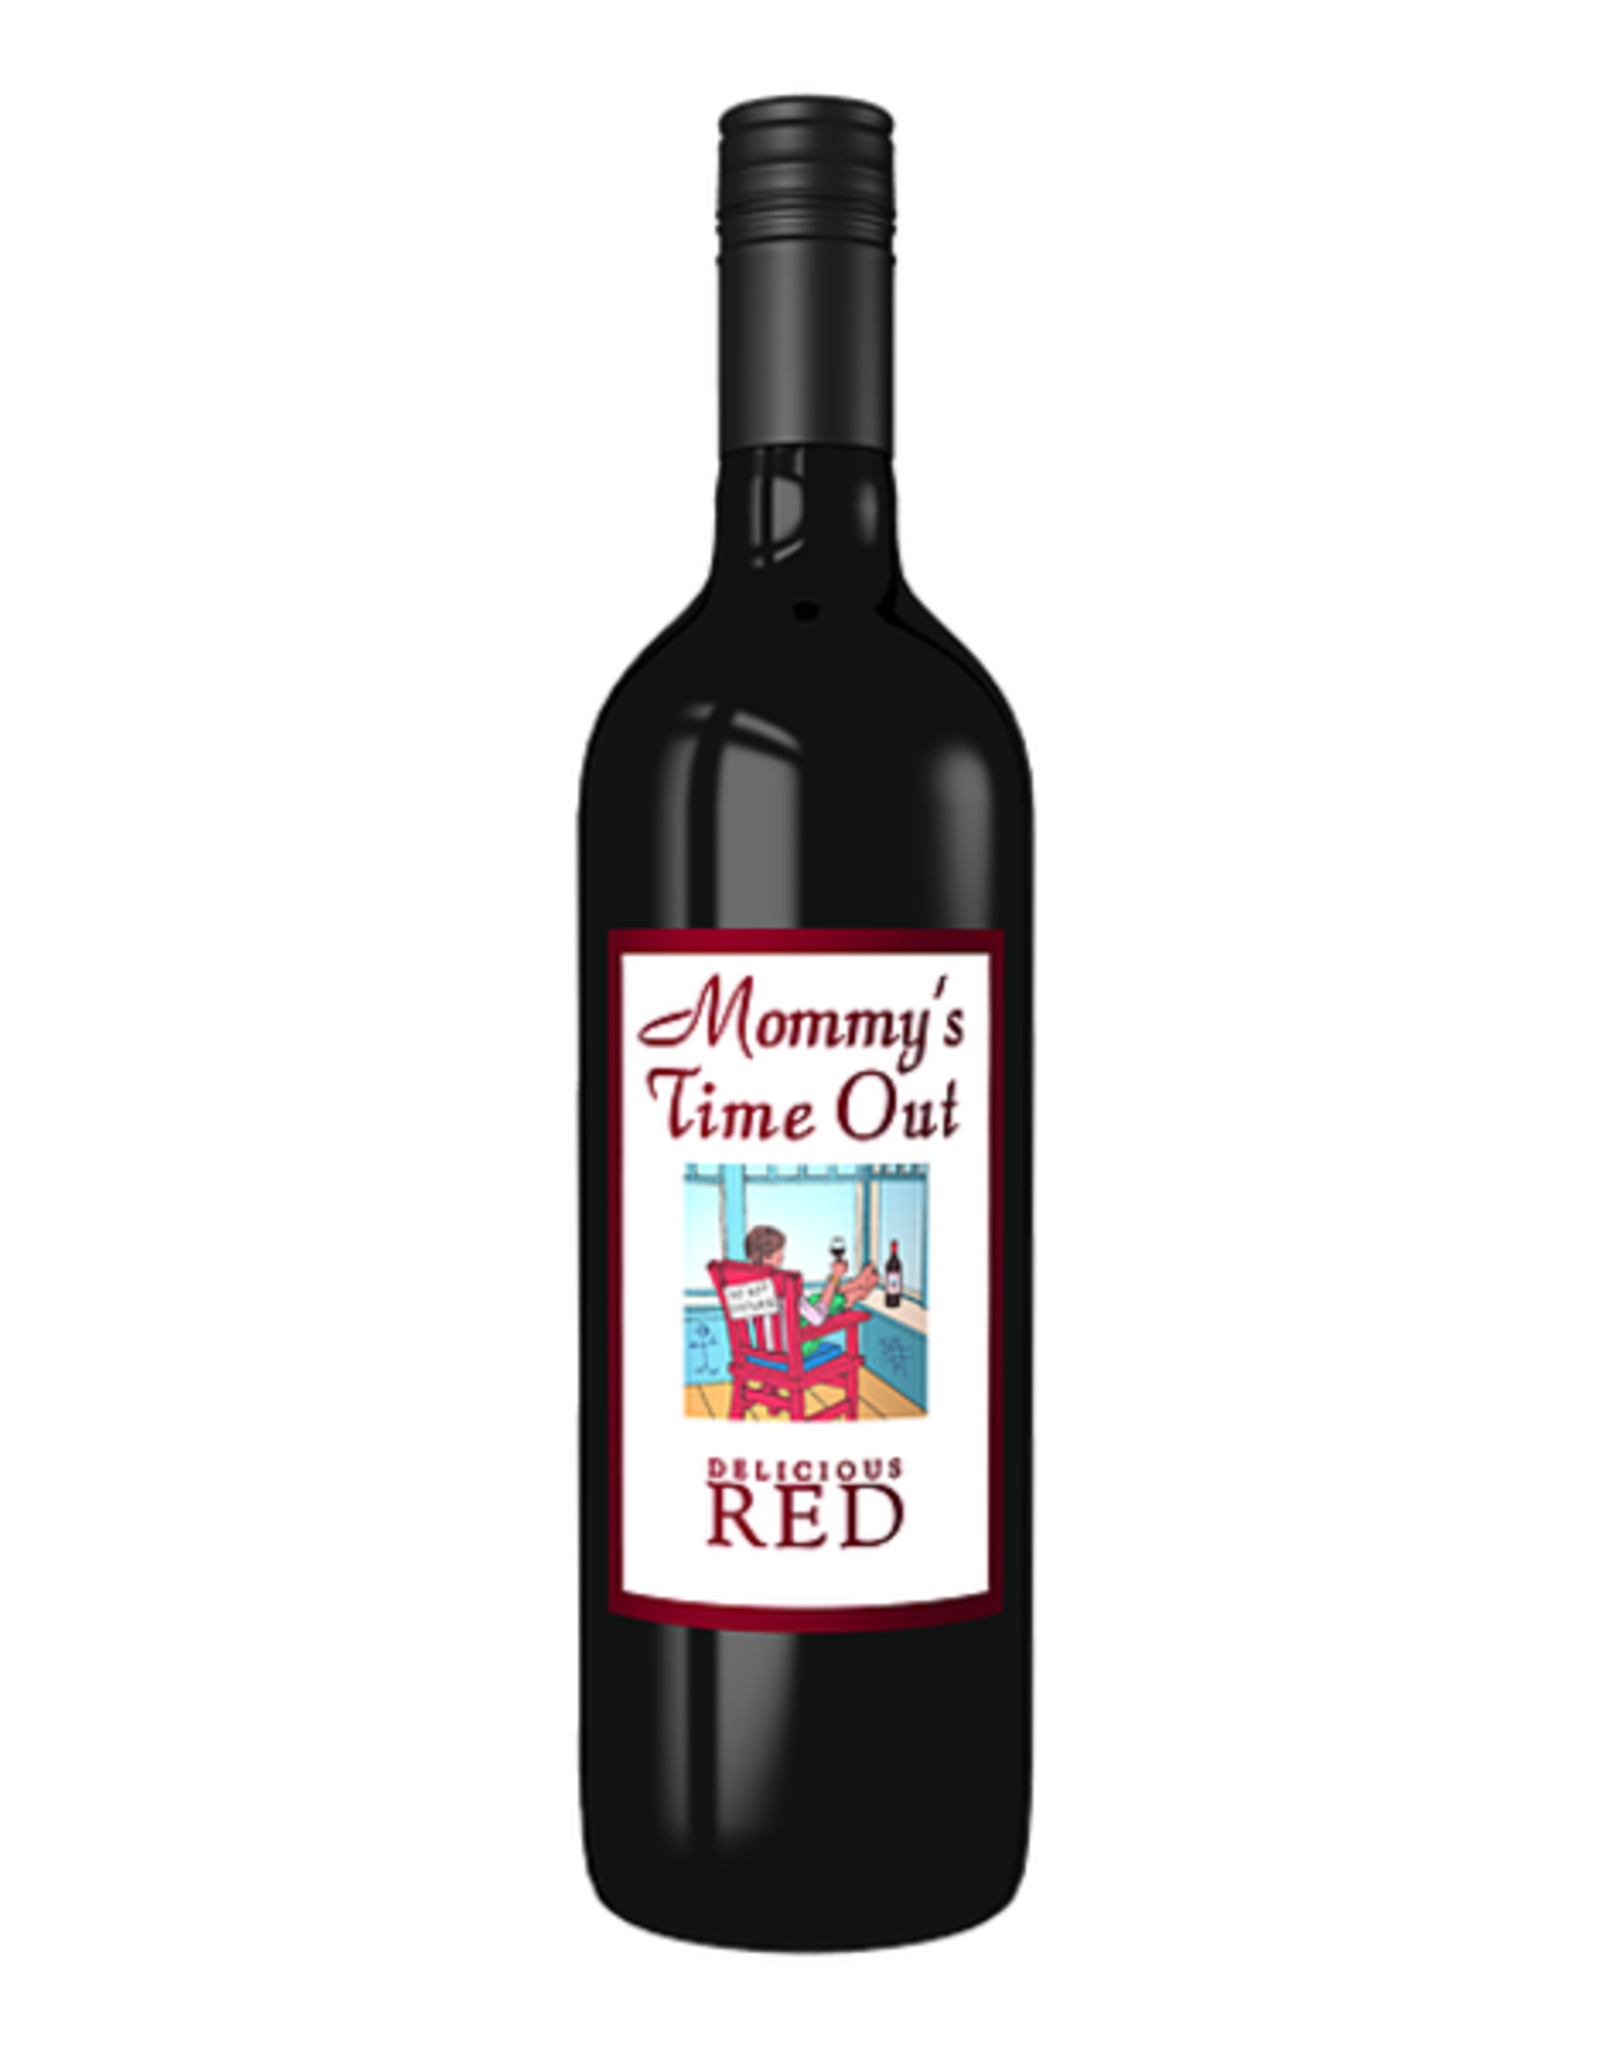 MOMMY'S TIME OUT DELICIOUS RED 750ML